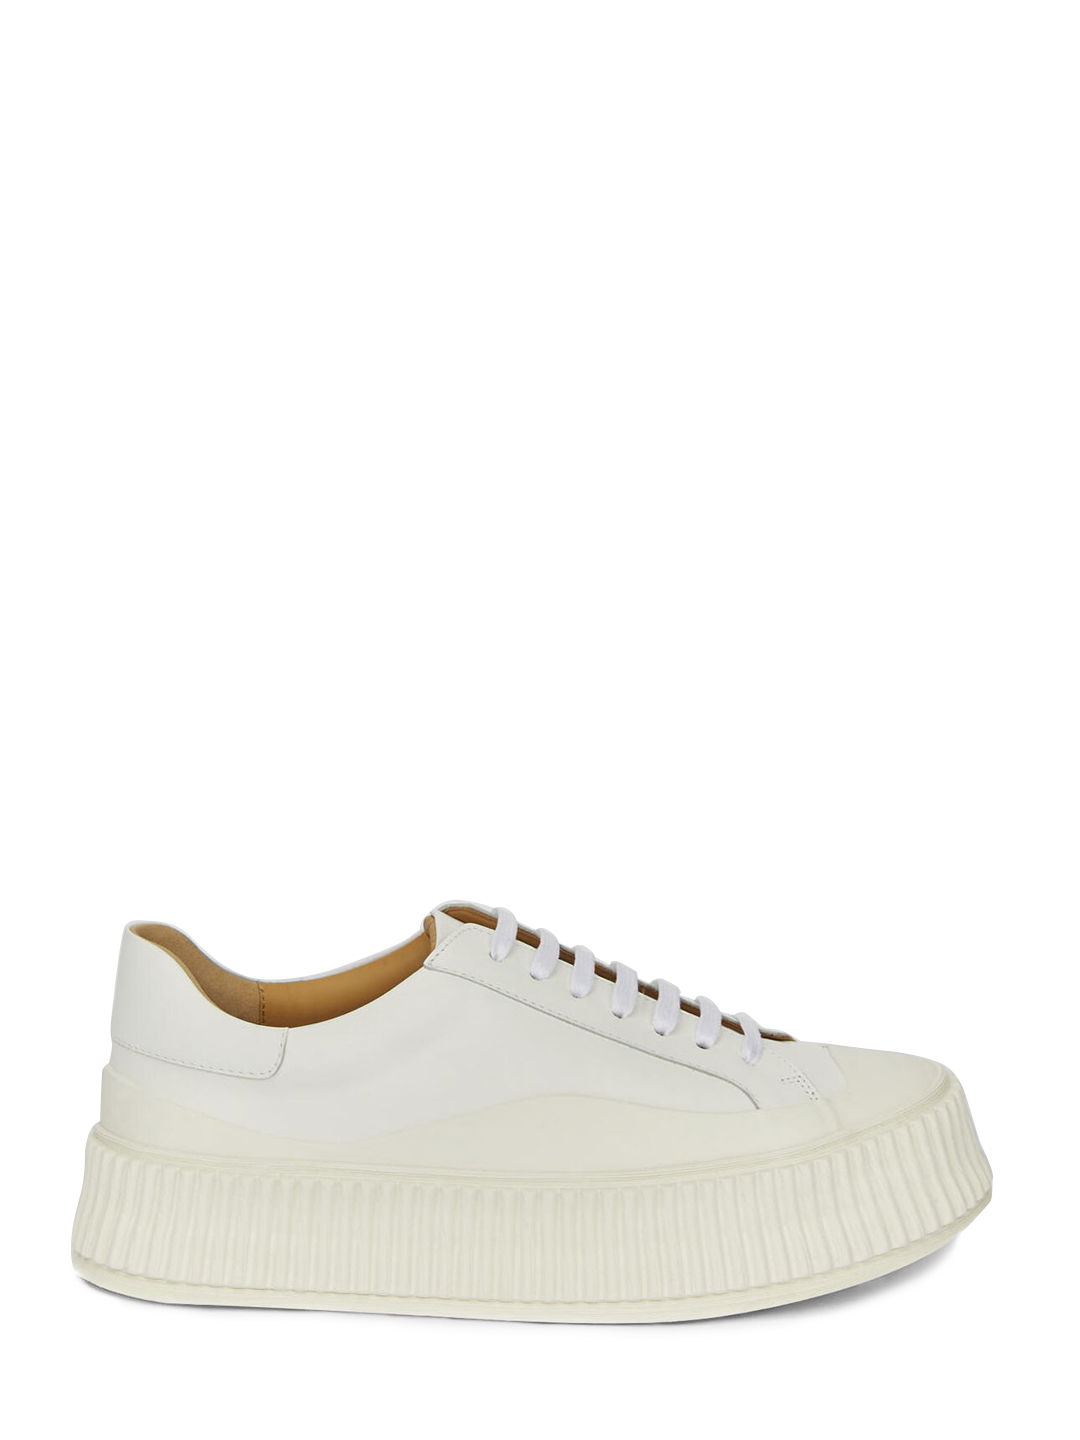 Jil Sander LEATHER SNEAKER WHITE